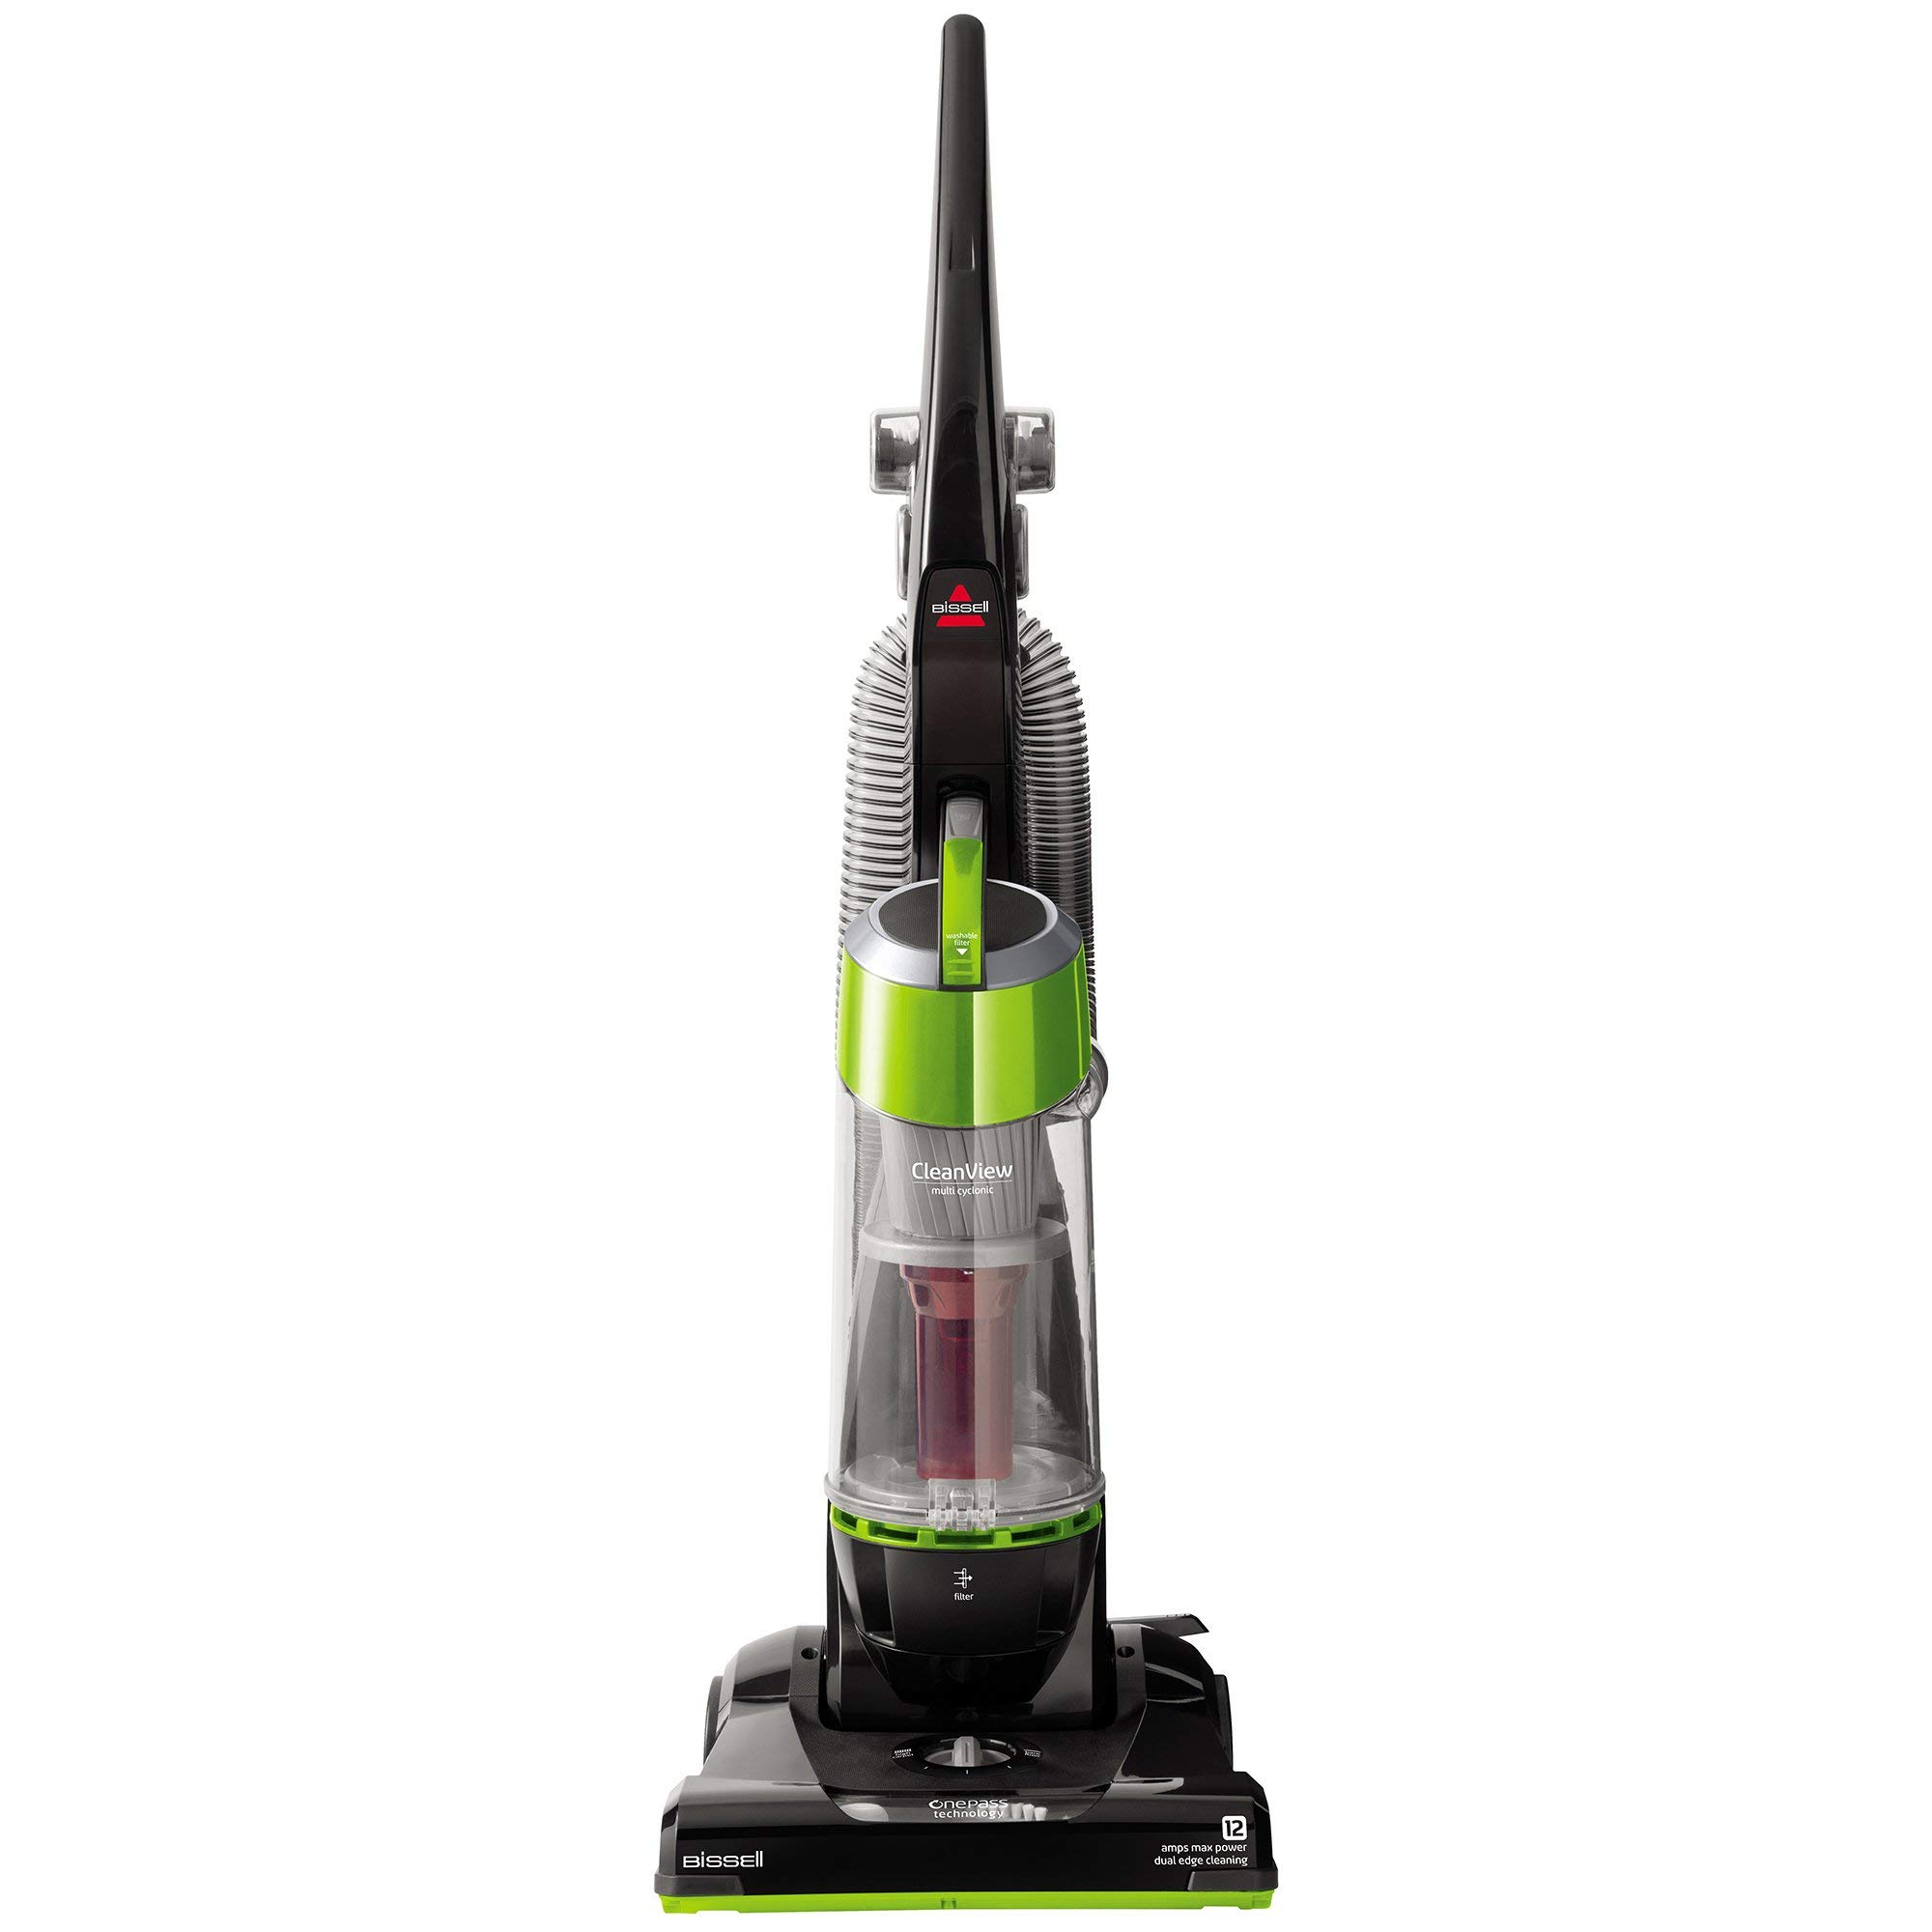 Bissell CleanView Bagless Upright Vacuum, Green, 95957 (Renewed) by Bissell